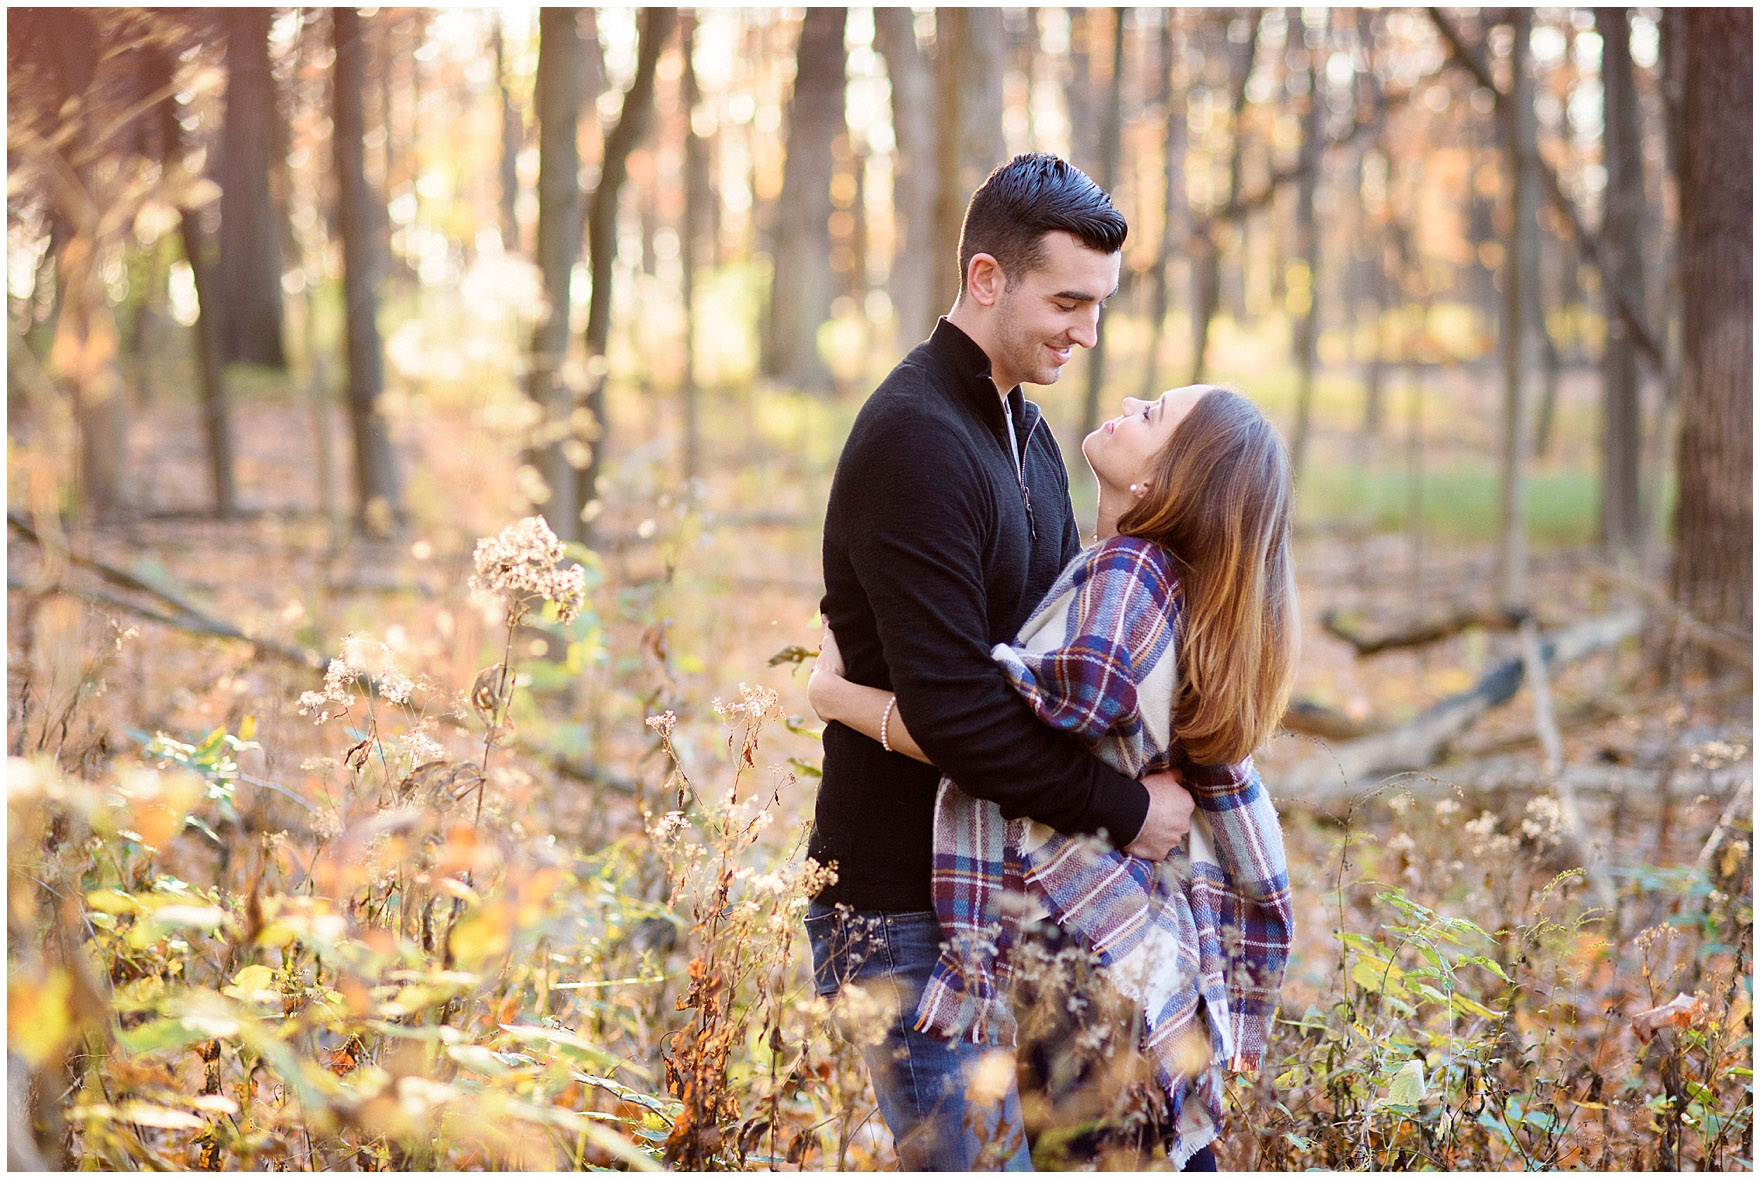 A bride and groom to be embrace during a fall woods engagement session.